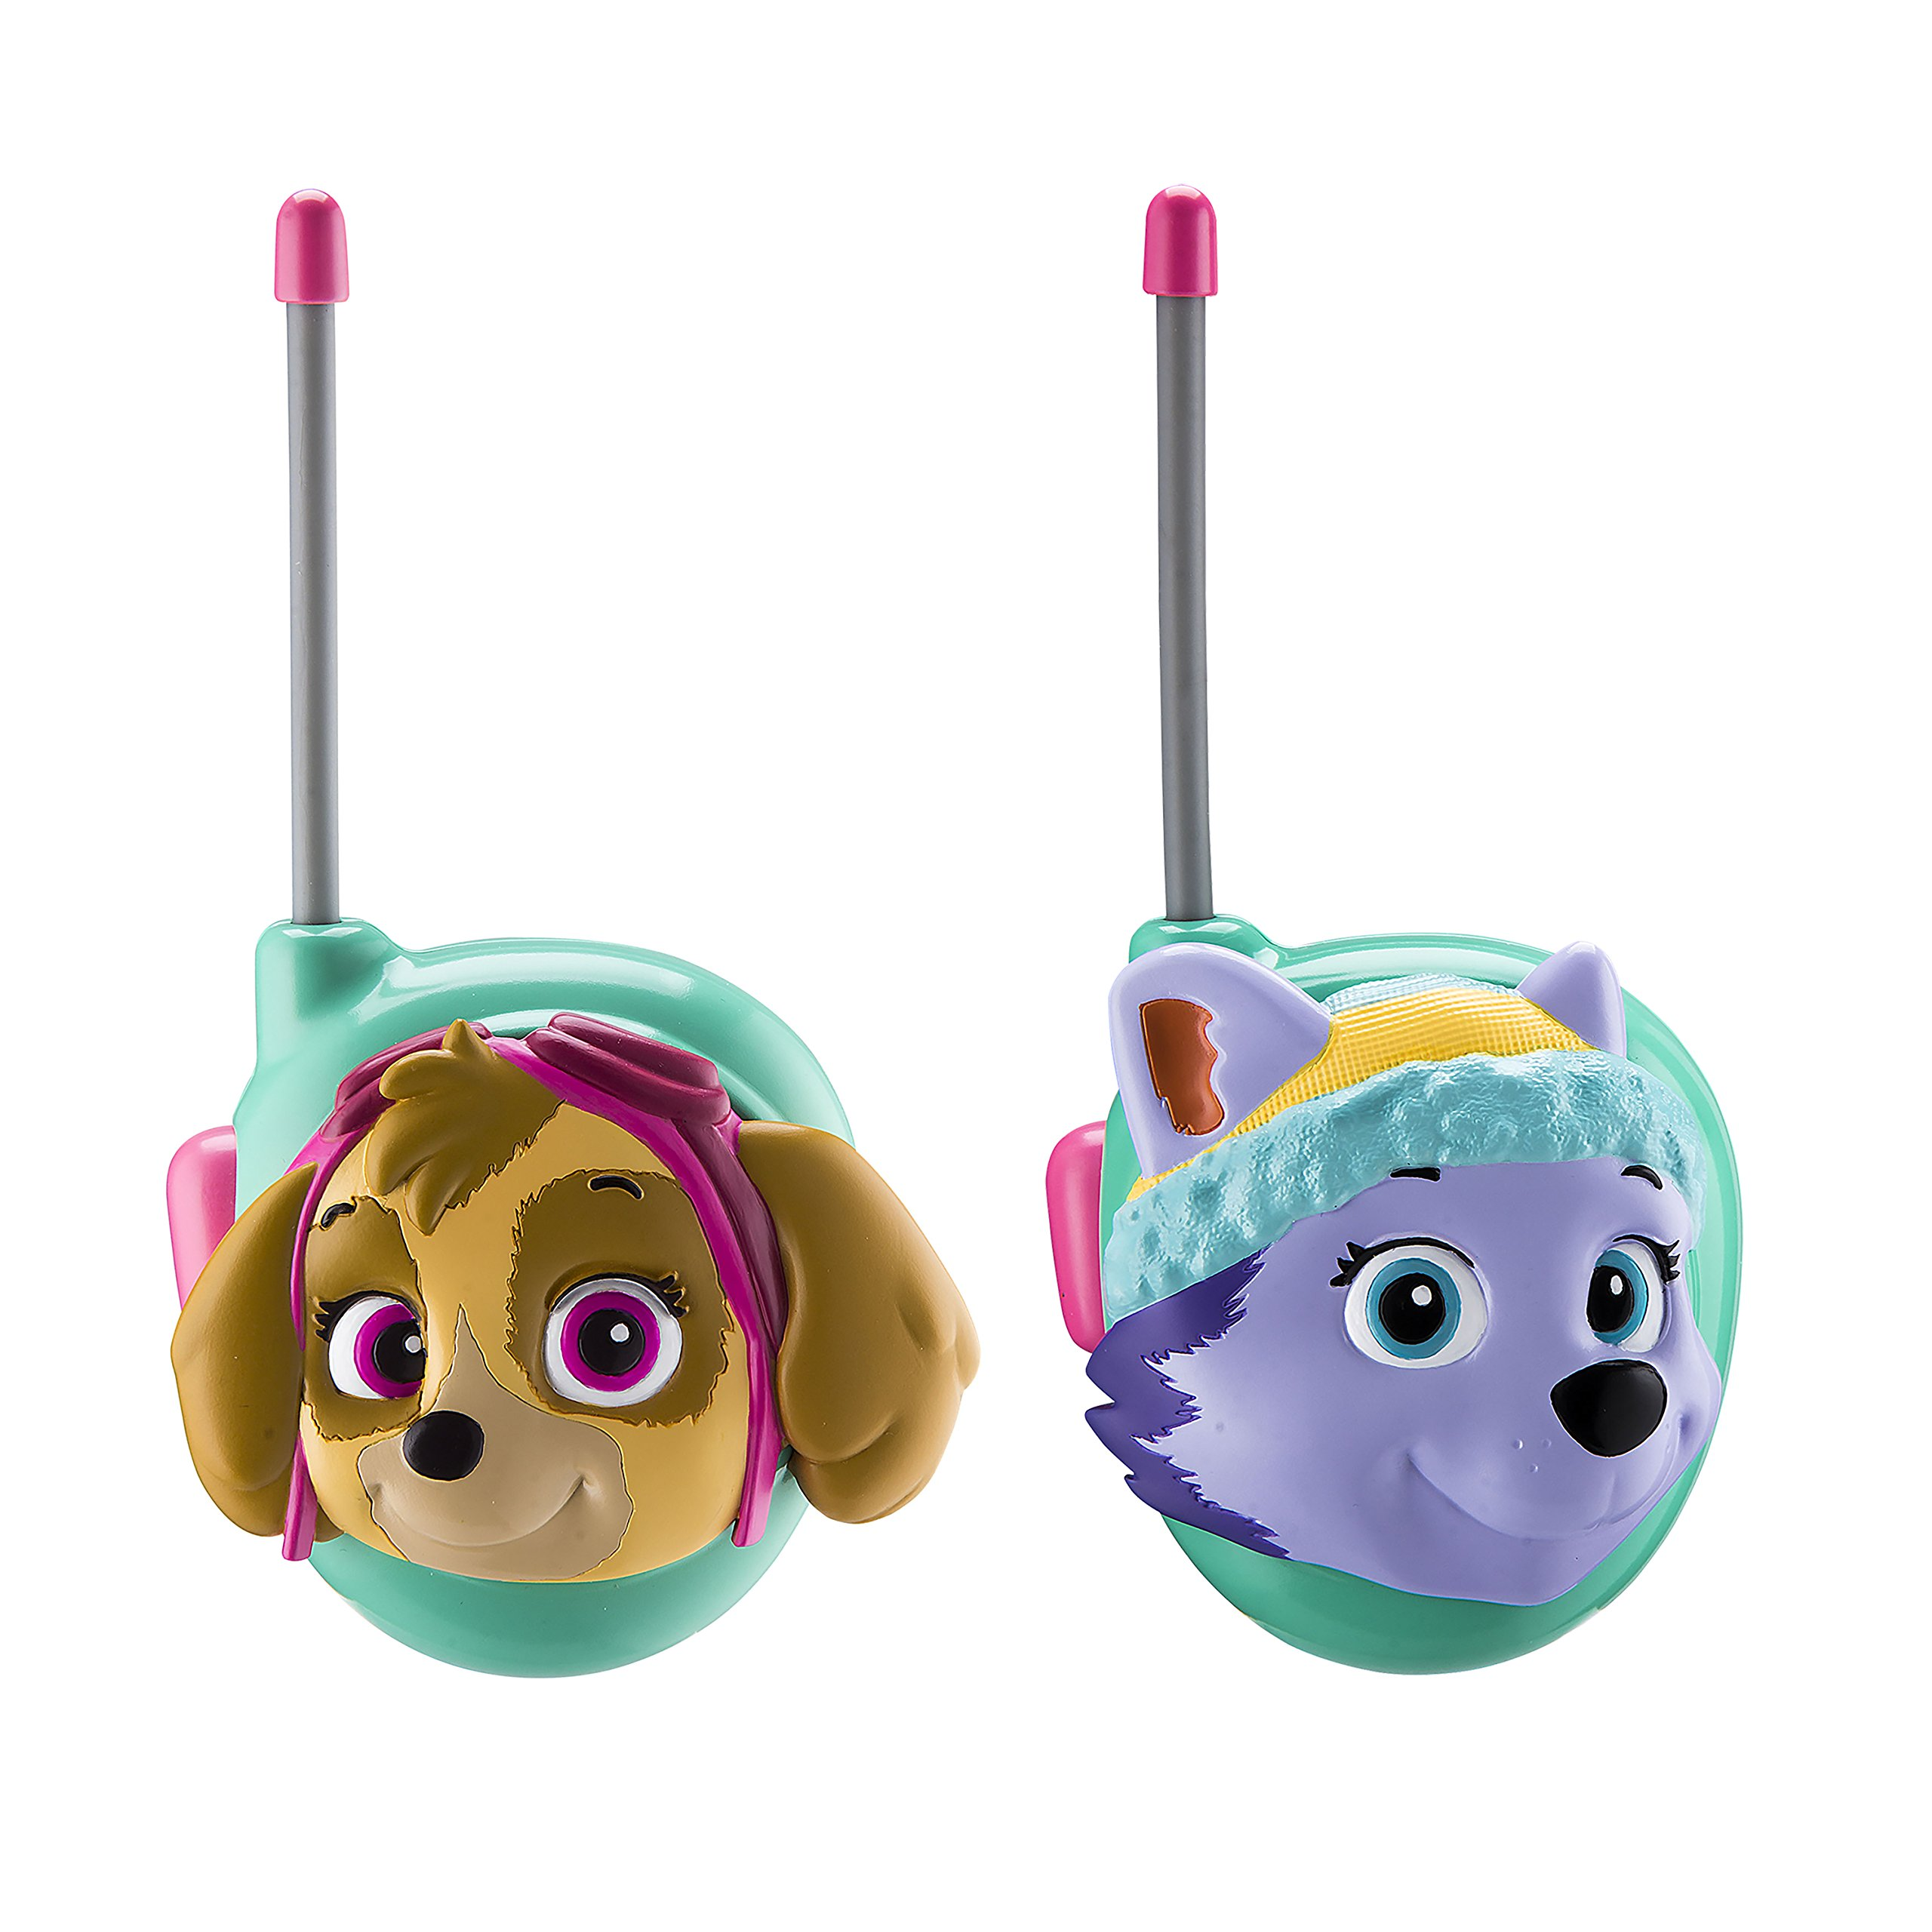 Paw Patrol Skye & Everest Walkie Talkies for Kids Static Free Extended Range Kid Friendly Easy to Use 2 Way Walkie Talkies by eKids (Image #1)